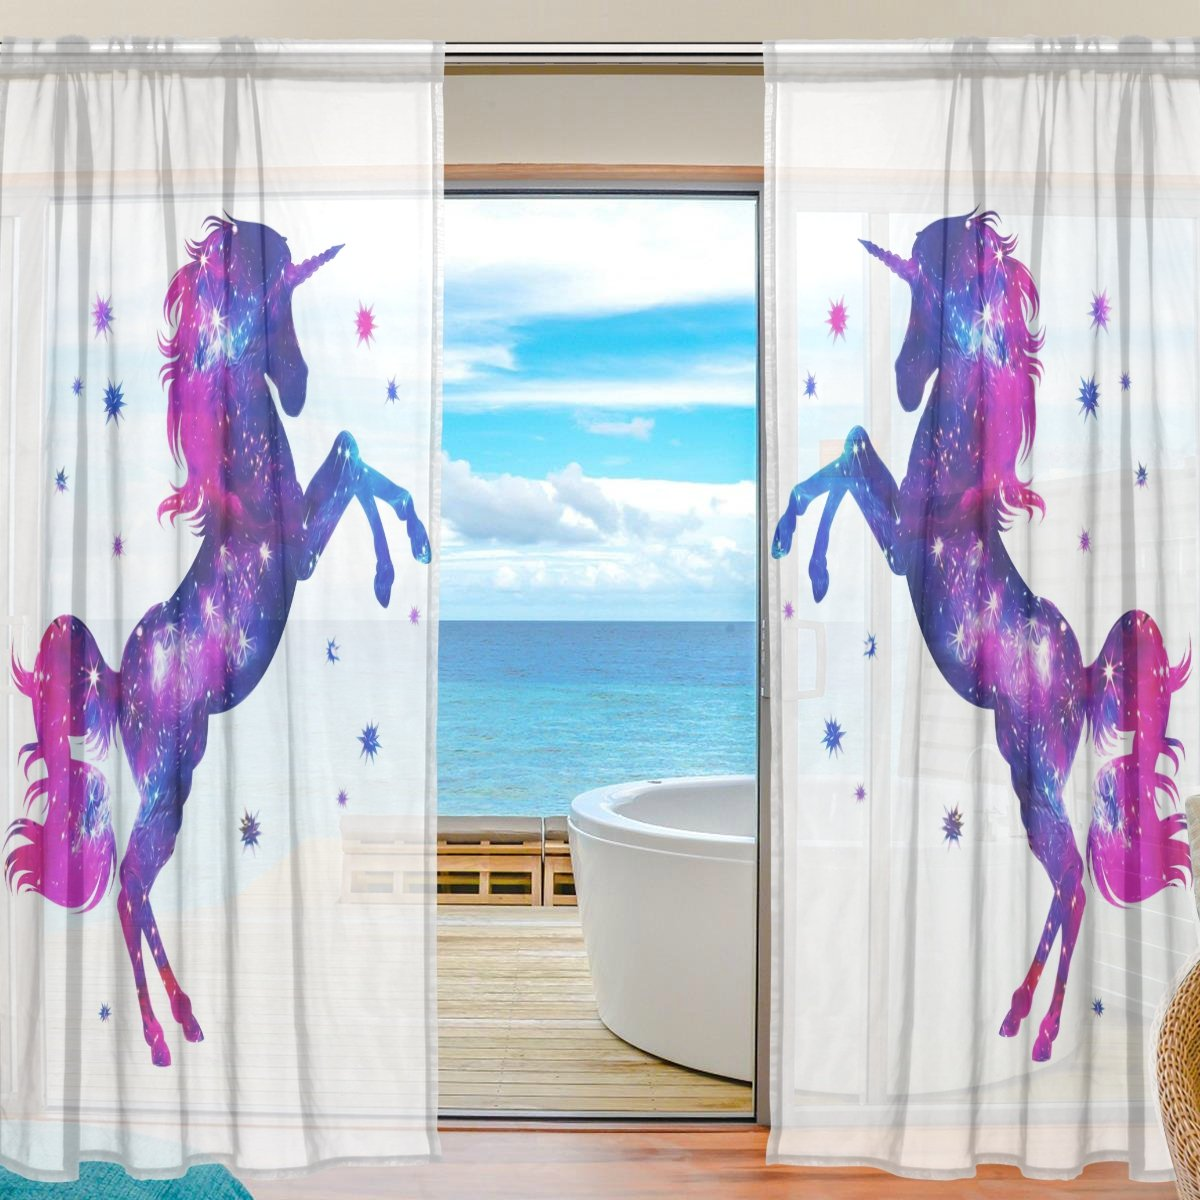 SEULIFE Window Sheer Curtain, Unicorn Animal Star Glitter Voile Curtain Drapes Door Kitchen Living Room Bedroom 55x78 inches 2 Panels g3721567p112c126s167